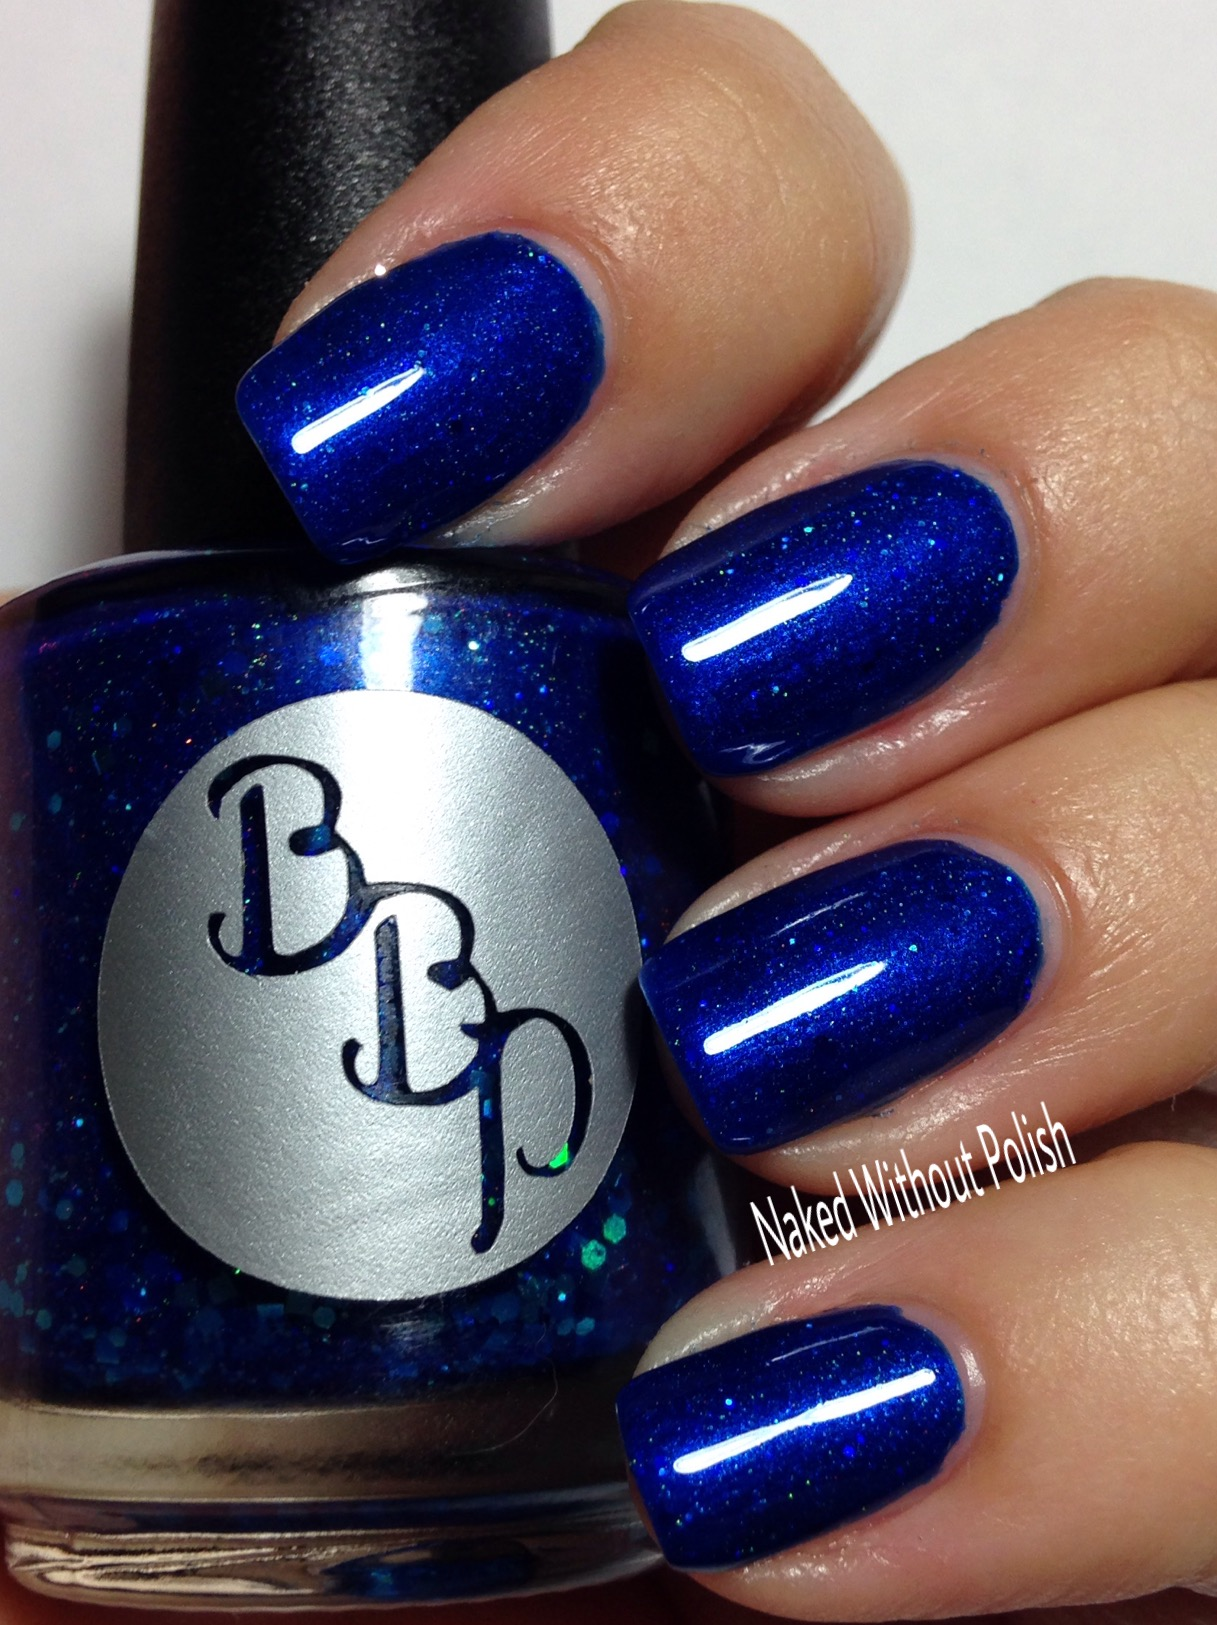 Bad-Bitch-Polish-Blue-My-Mind-11